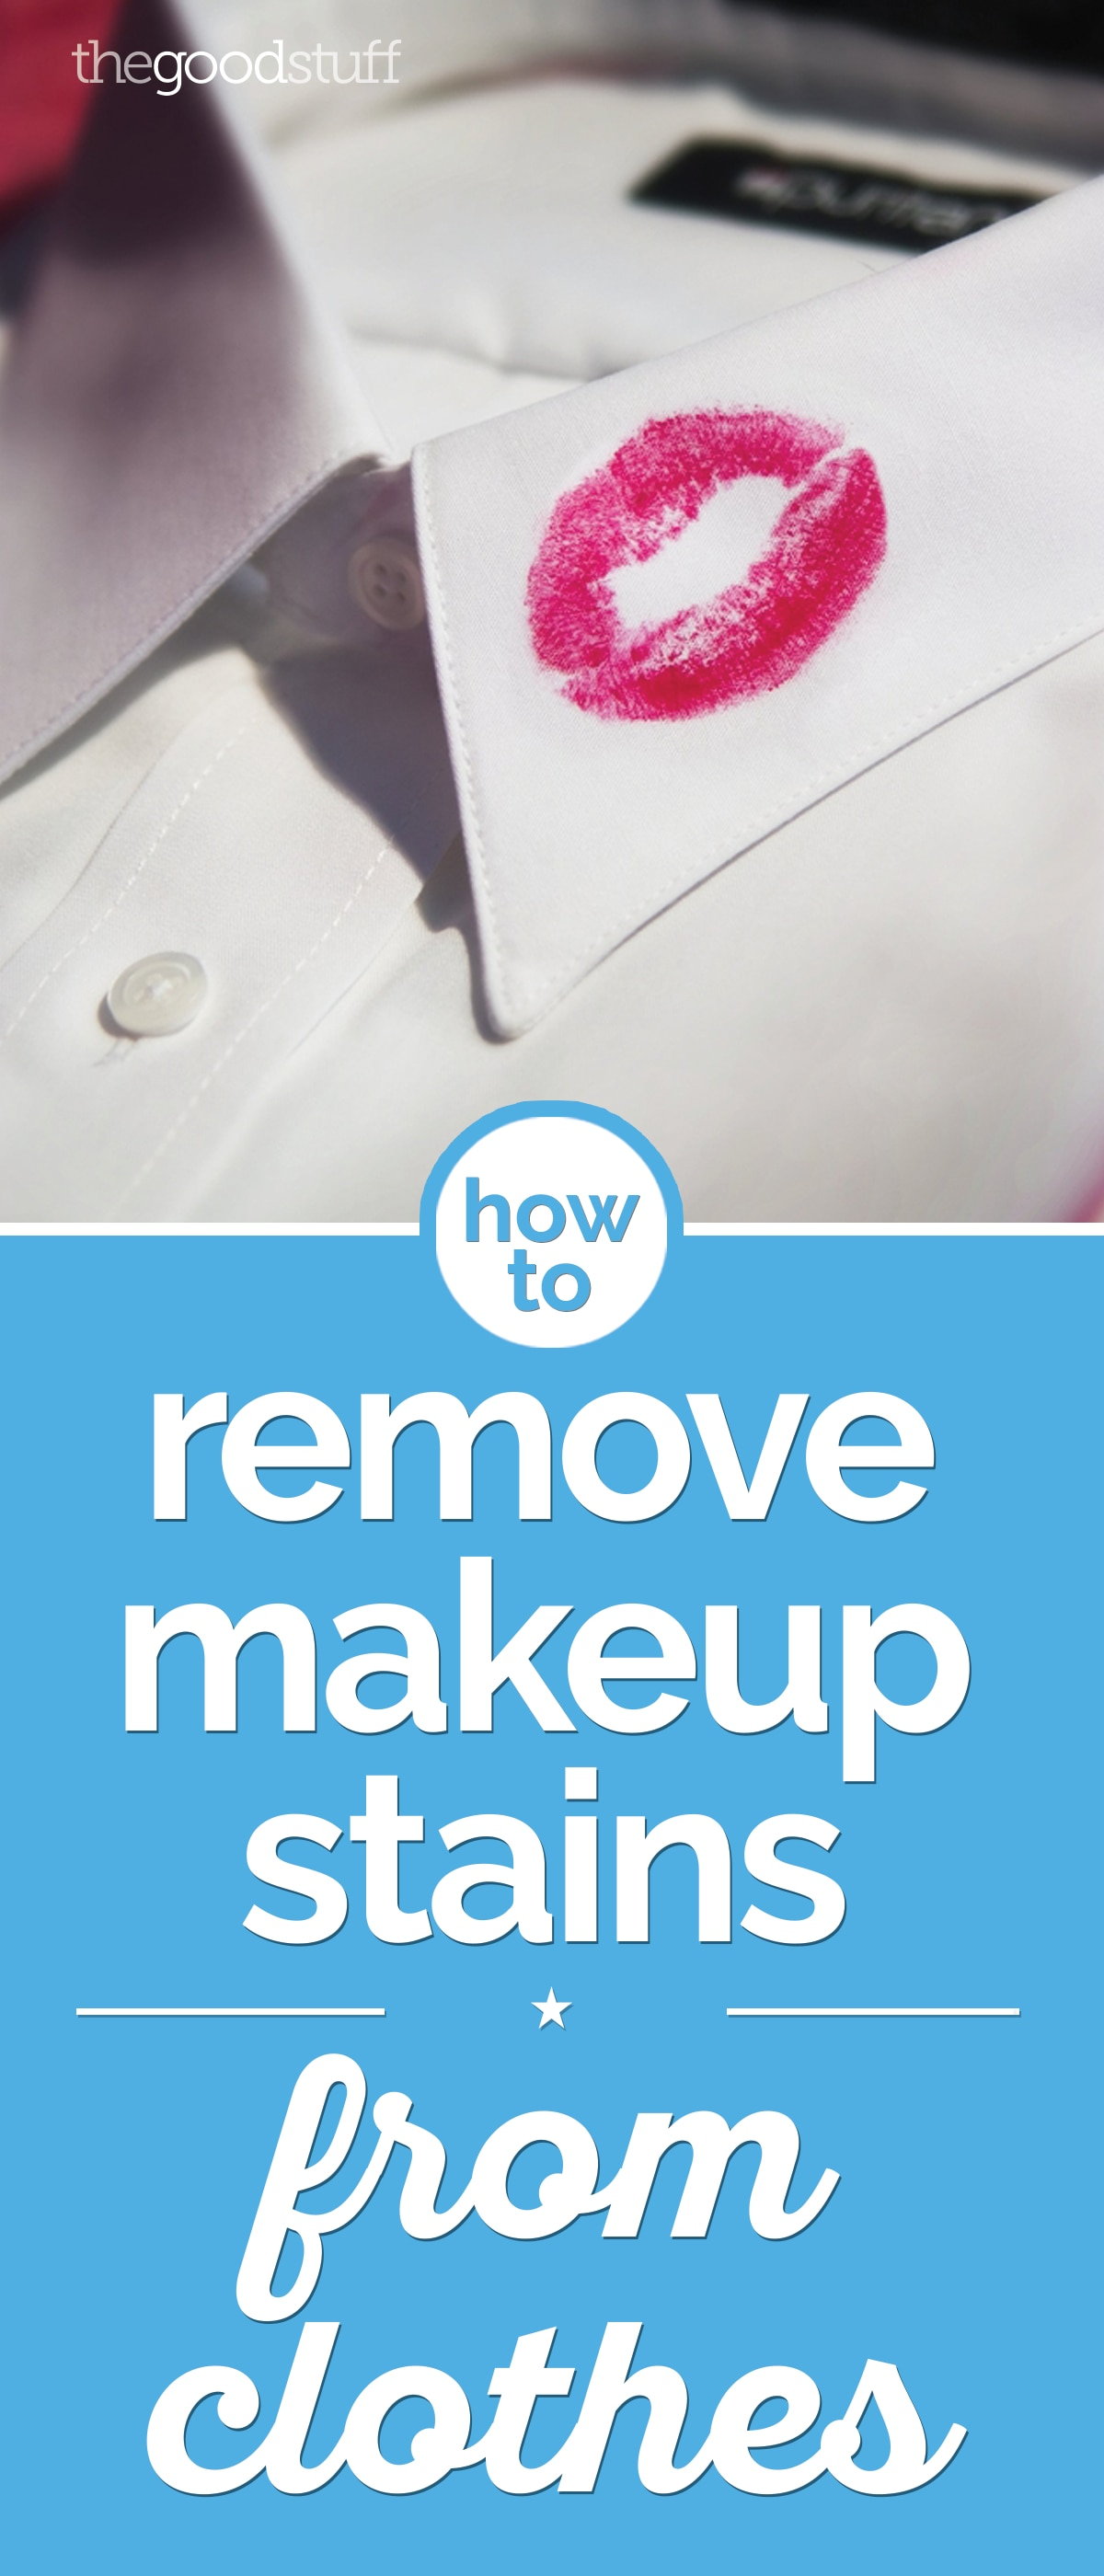 How to Remove Makeup Stains from Clothes | thegoodstuff